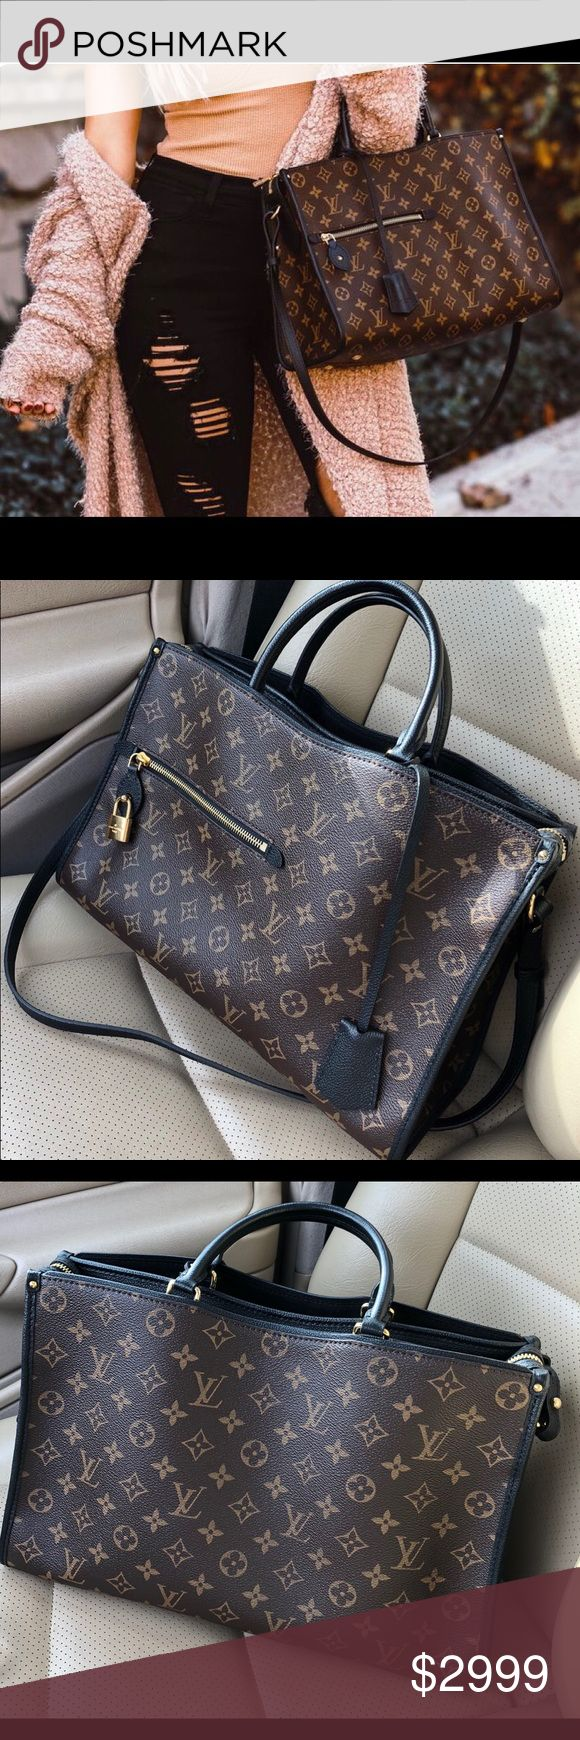 """Authentic Louis Vuitton Popincourt MM Brand new! Never used! This RARE stunning and sexy bag is sure to turn heads! Collapsible handles making this bag easily worn as a shoulder bag when not carried Satchel style! Comes with Louis Vuitton dust cover, original Louis Vuitton box and sku tag from store. Retail price $2865 with tax. Asking $2500 or best offer.   Measurements:   15"""" L x 5.5"""" W x 10"""" H Handle Drop: 5"""", 15"""" adjustable Louis Vuitton Bags Shoulder Bags"""